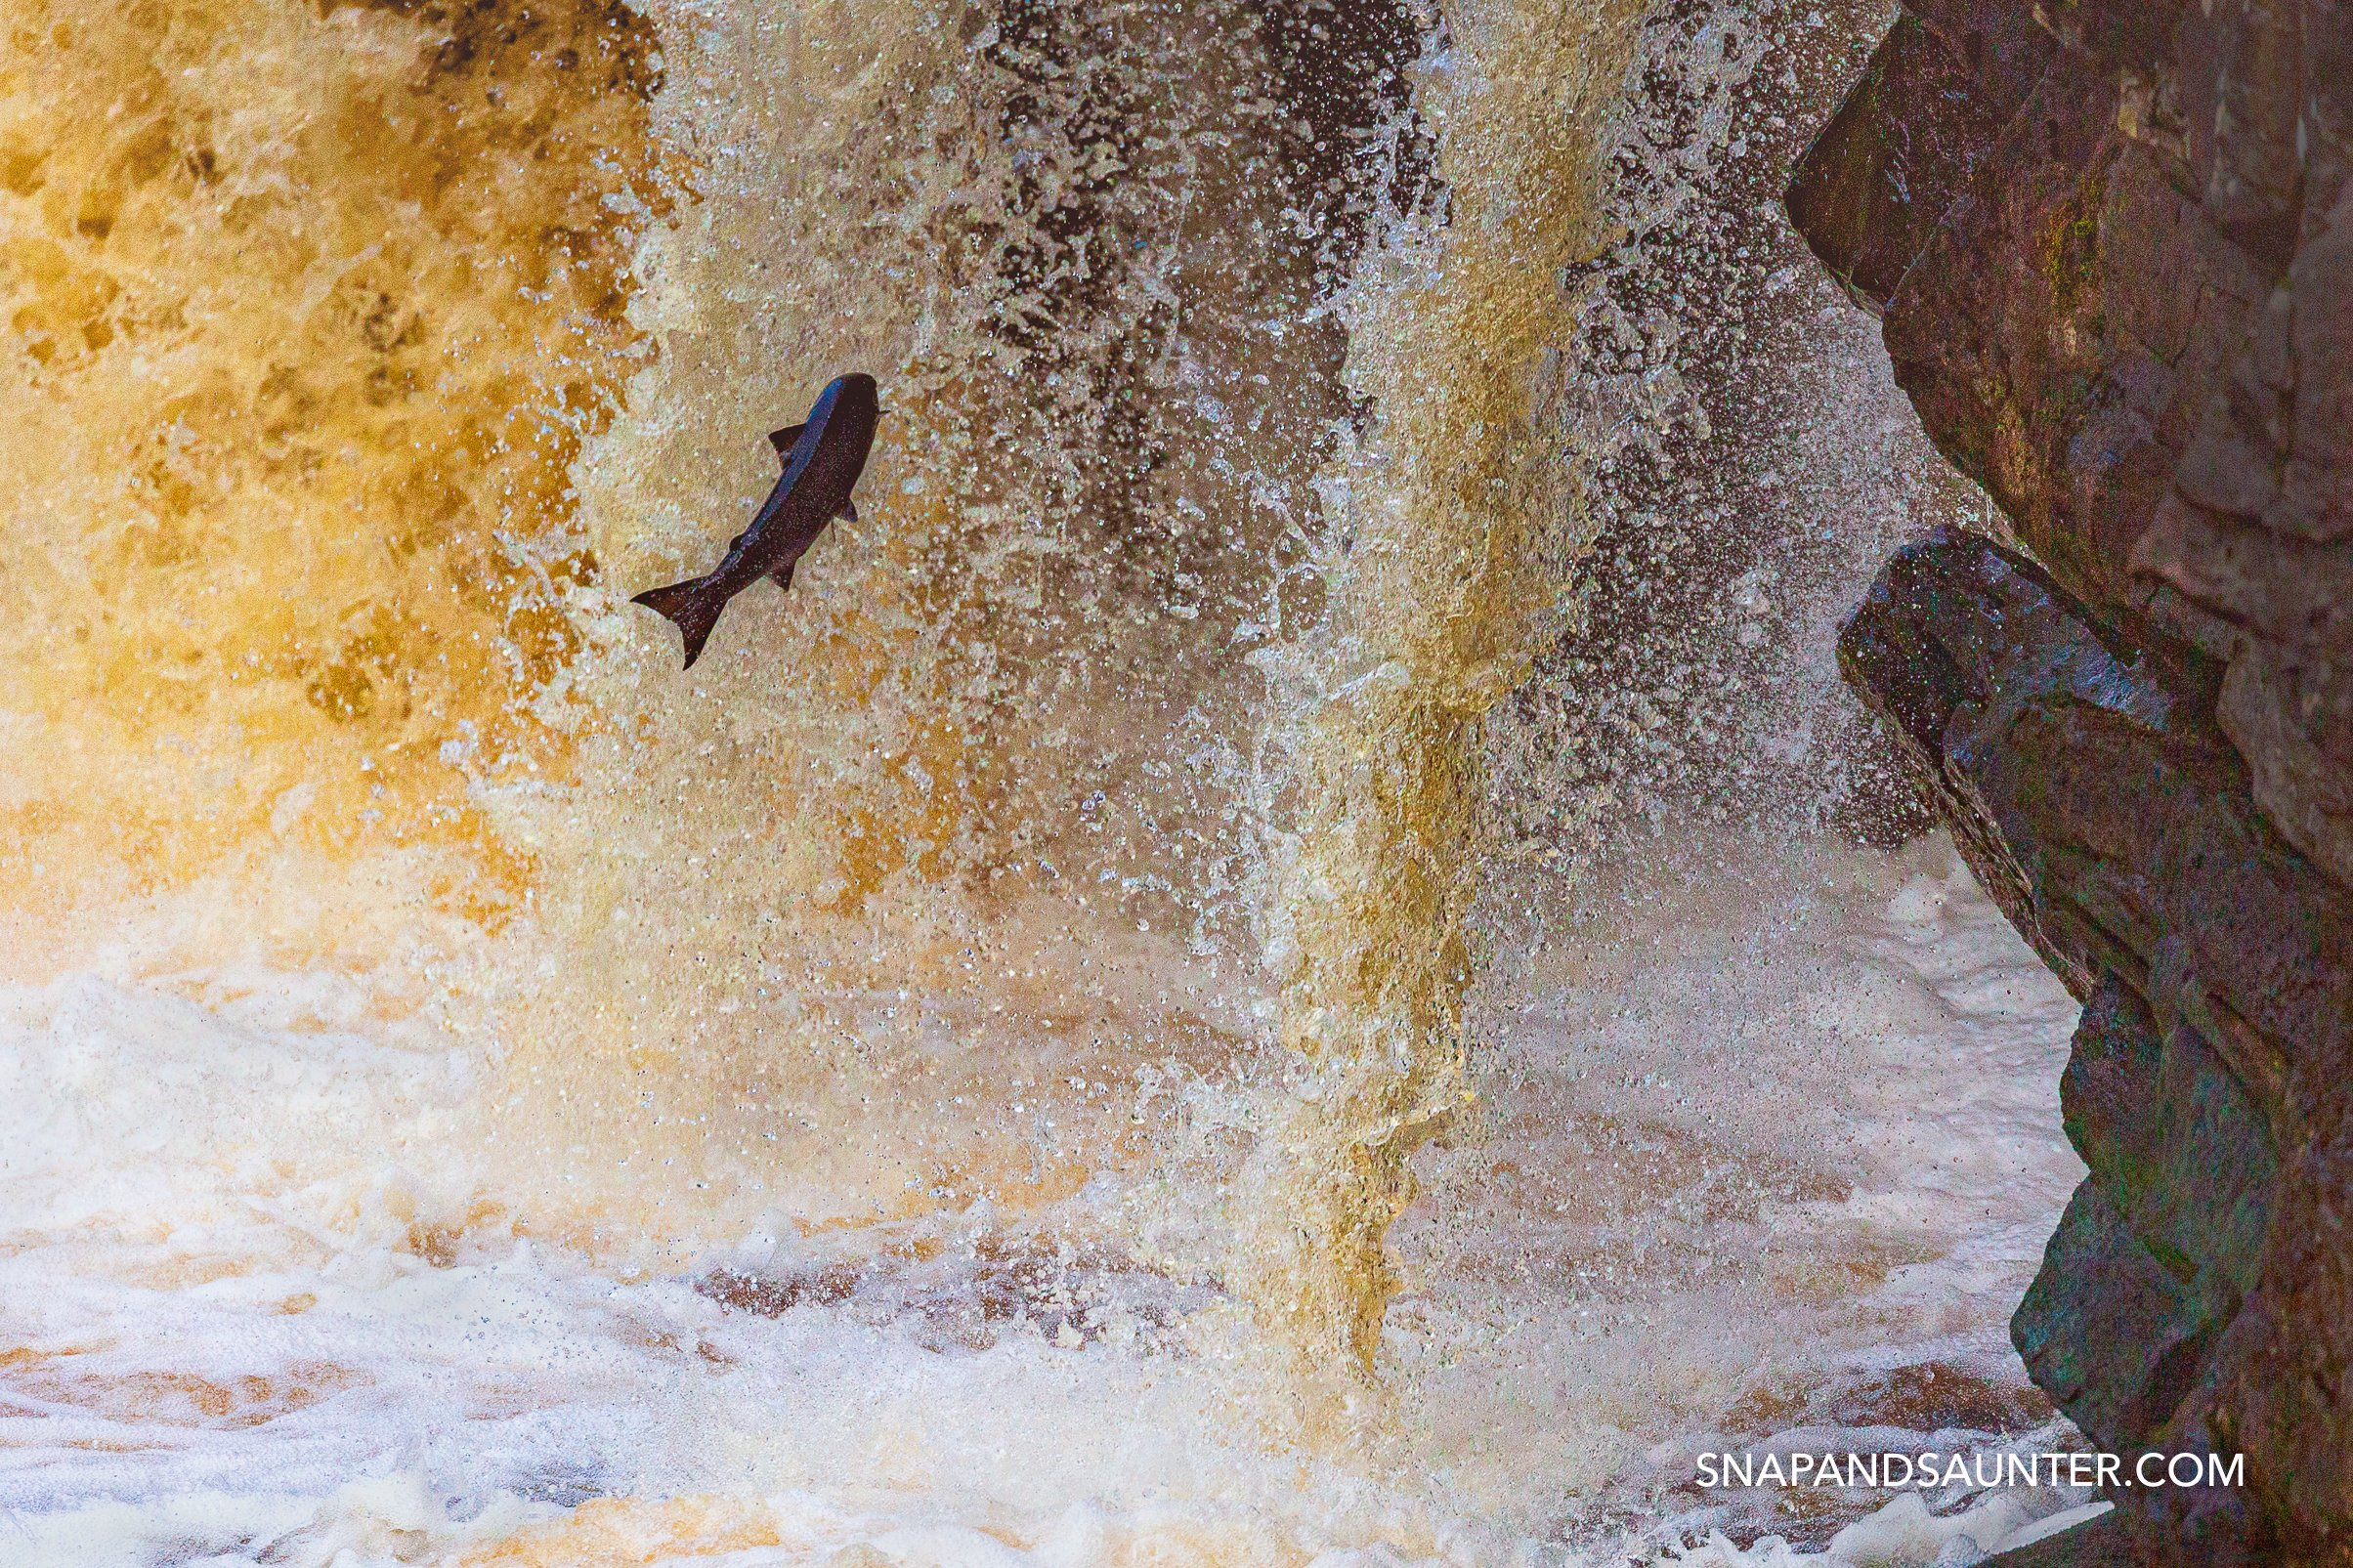 leaping salmon at Rogie Falls in Scotland. Martina Hardiman Photography